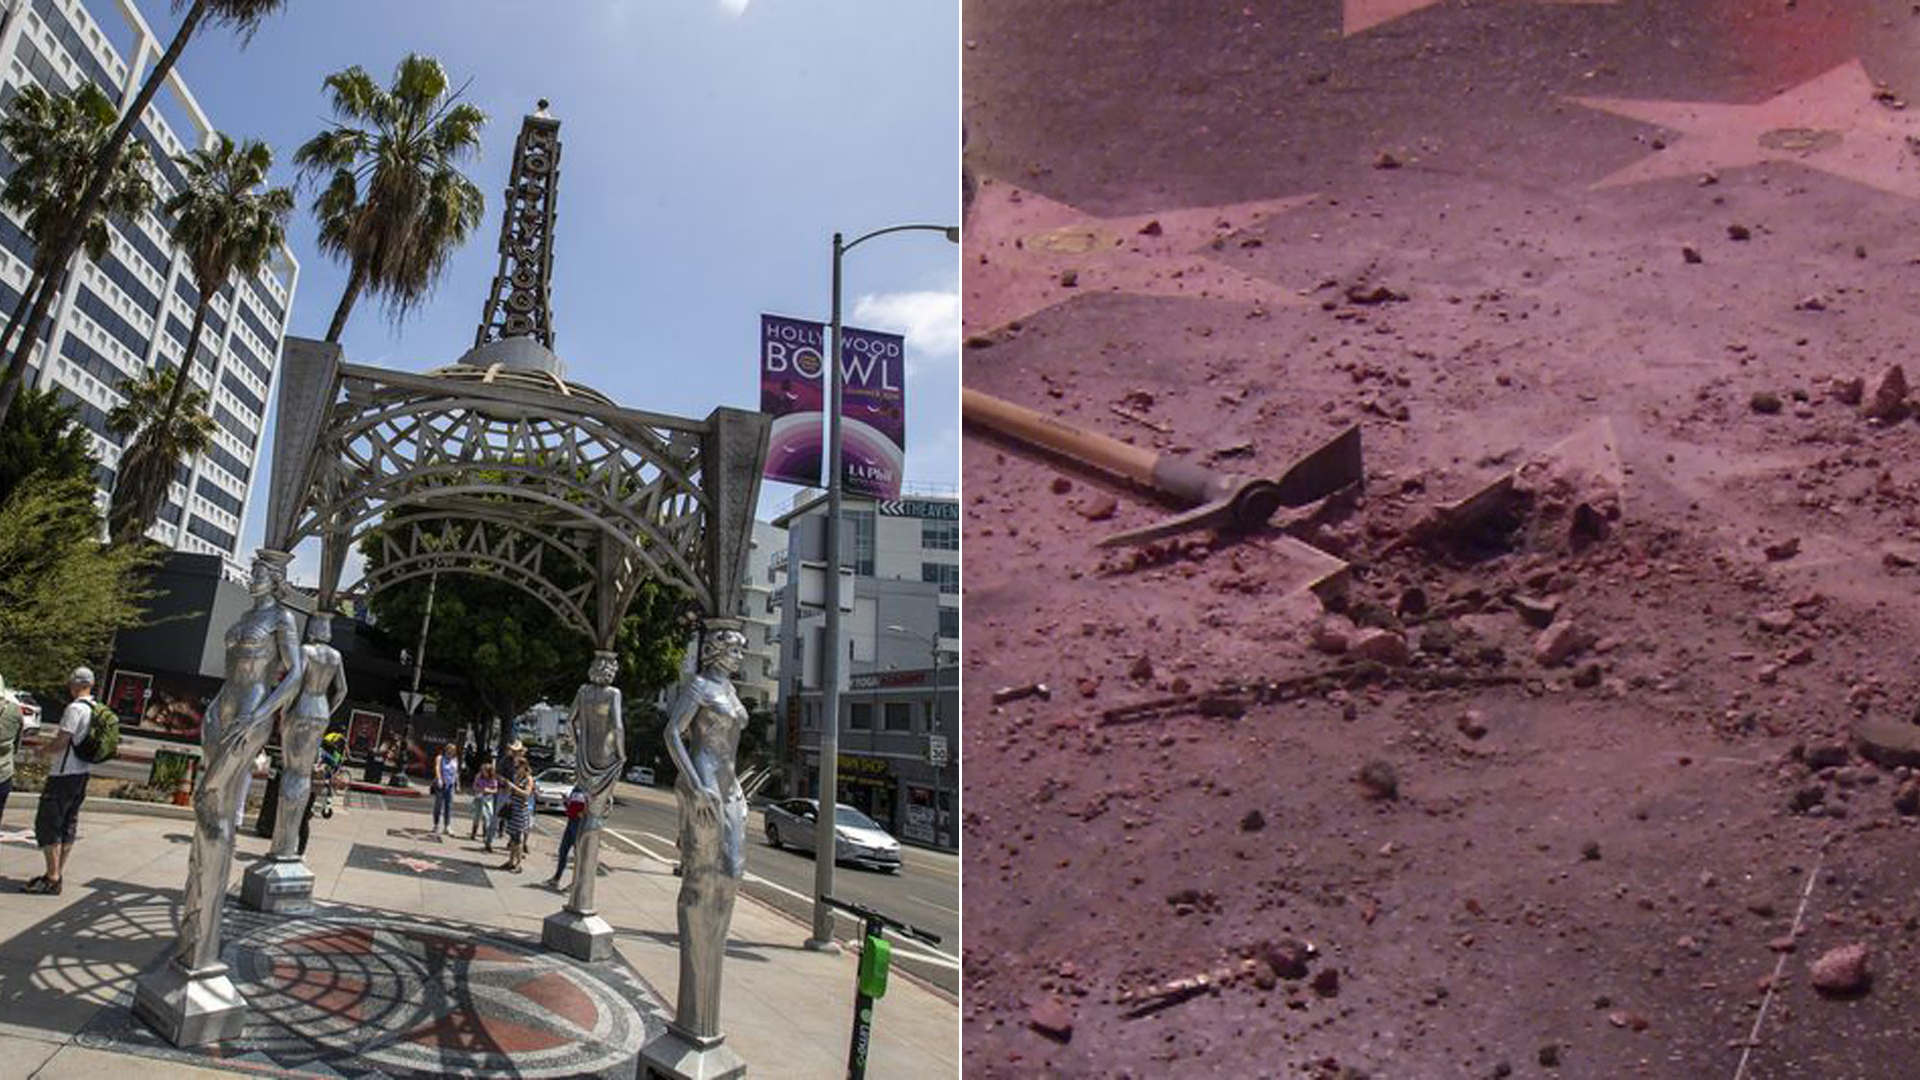 The Four Ladies of Hollywood gazebo is seen in an undated photo, left, and Donald Trump's vandalized star on the Hollywood Walk of Fame in seen on July 25, 2018. (Credit: Brian van der Brug / Los Angeles Times / Loudlabs)